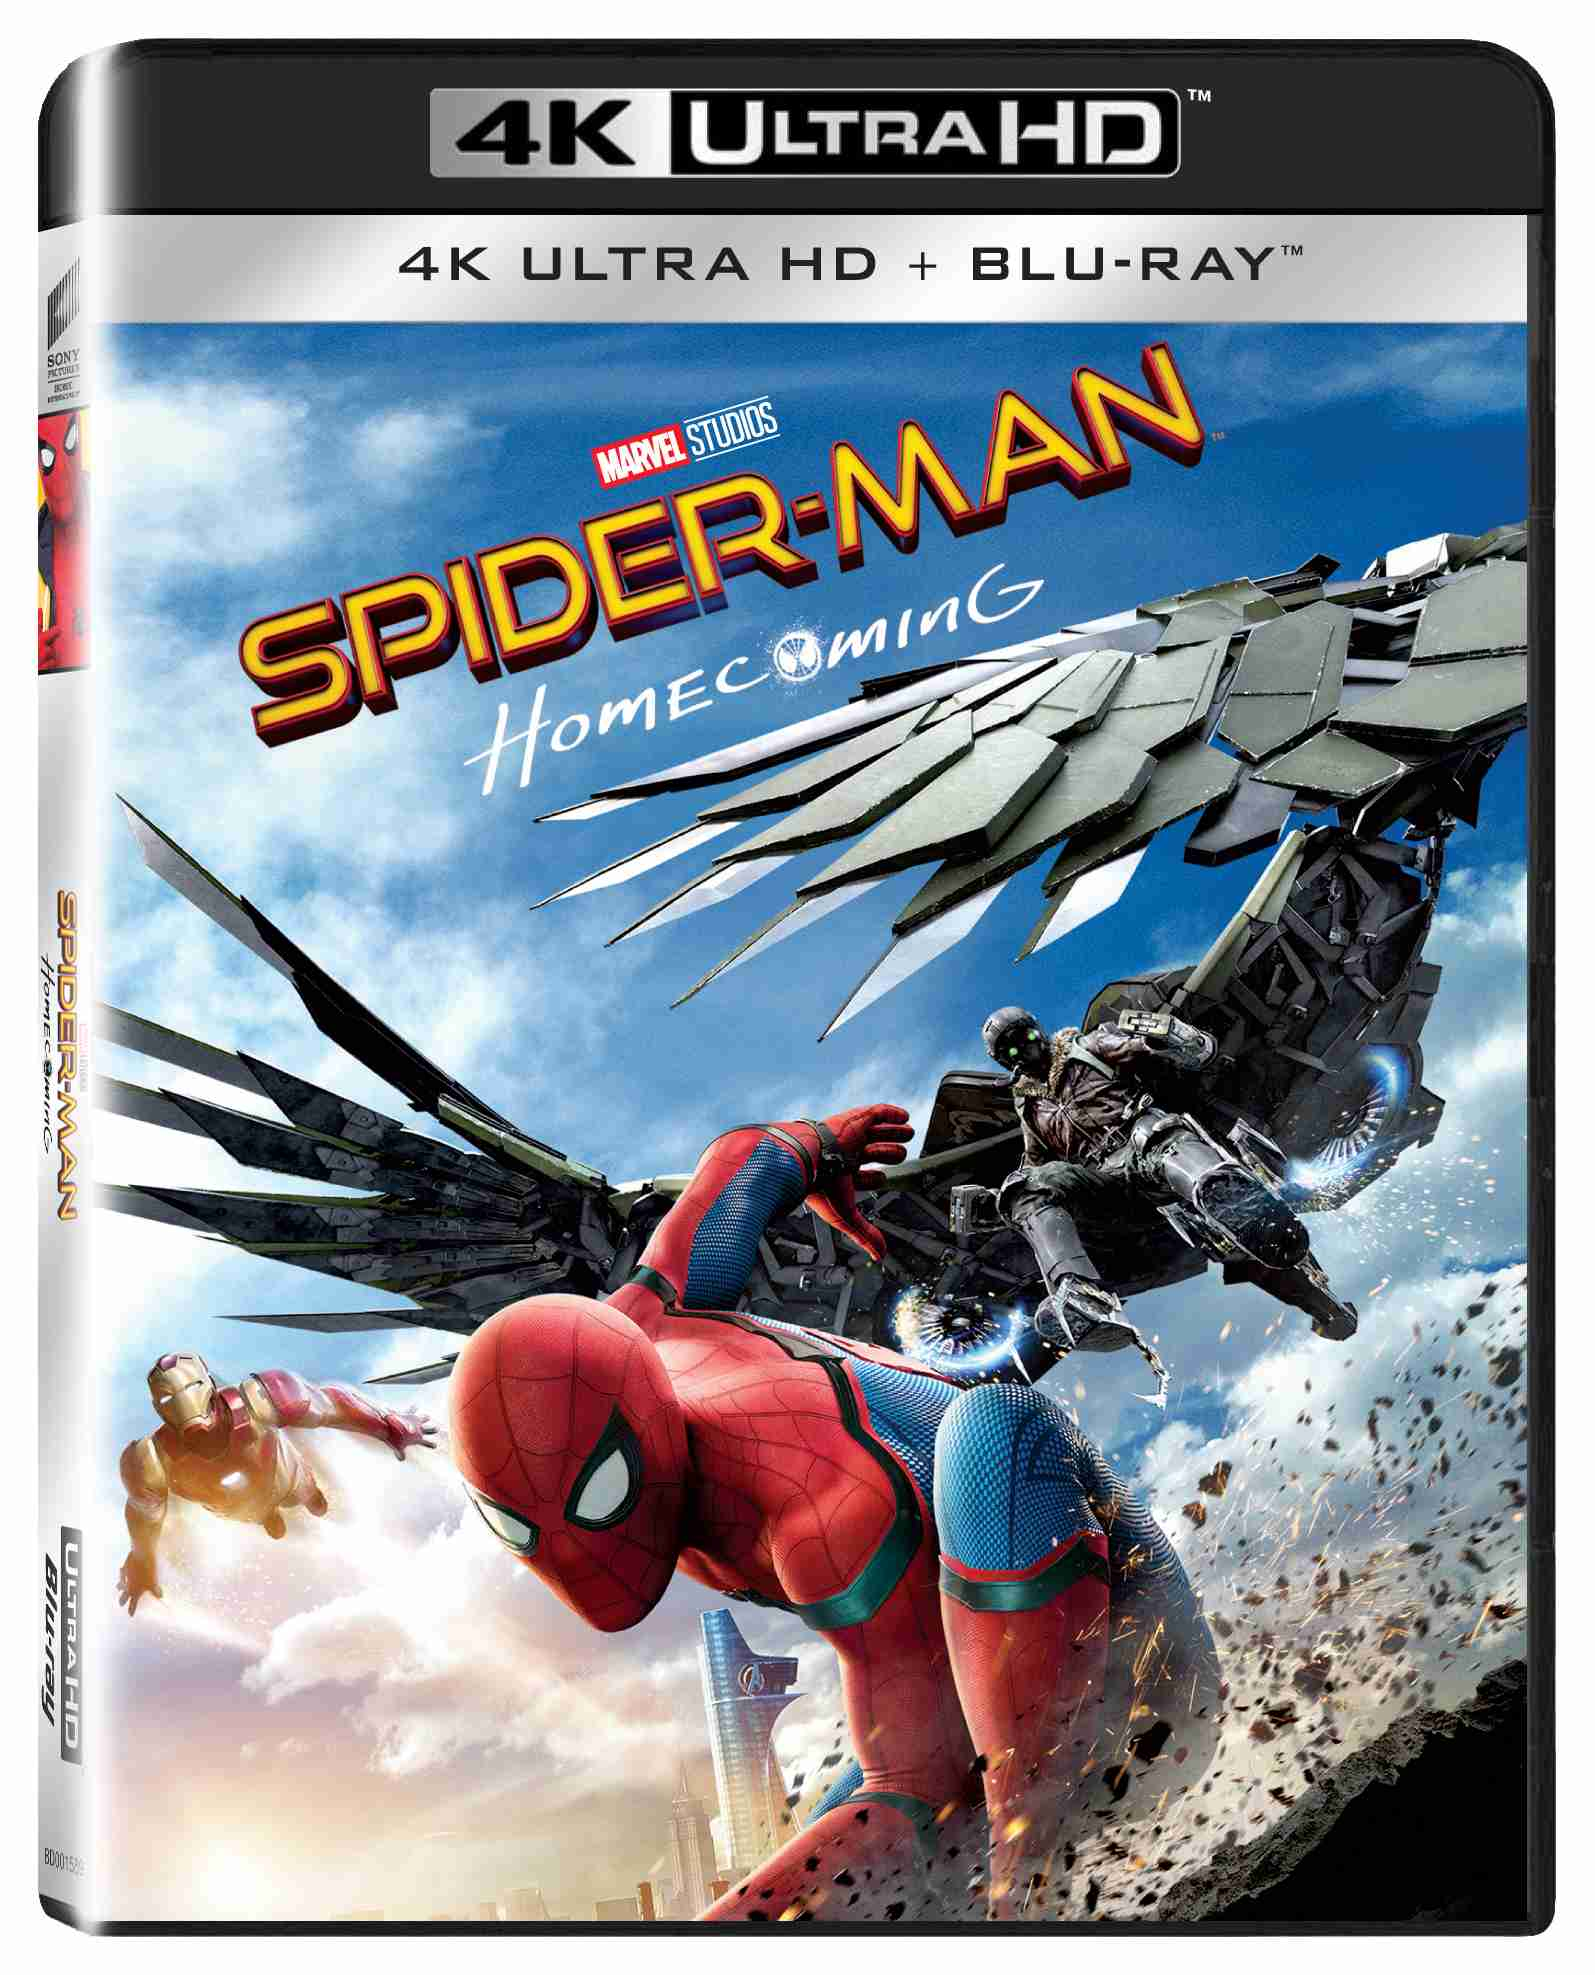 SPIDER-MAN: HOMECOMING (4K ULTRA HD) - UHD Blu-ray + Blu-ray (2 BD)